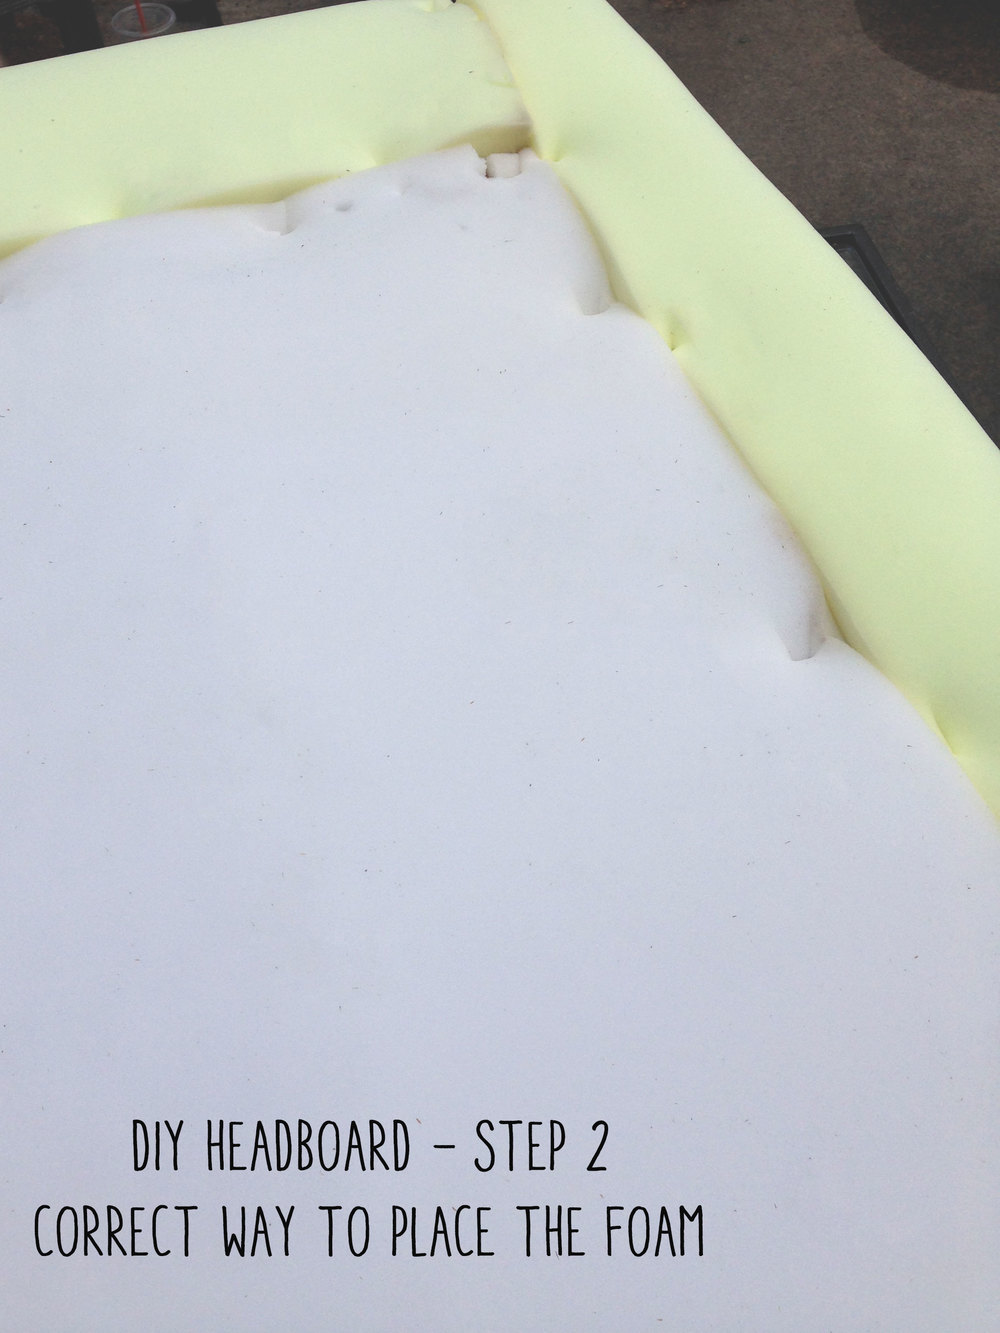 Step 2 - DIY Headboard, the correct way to place the form